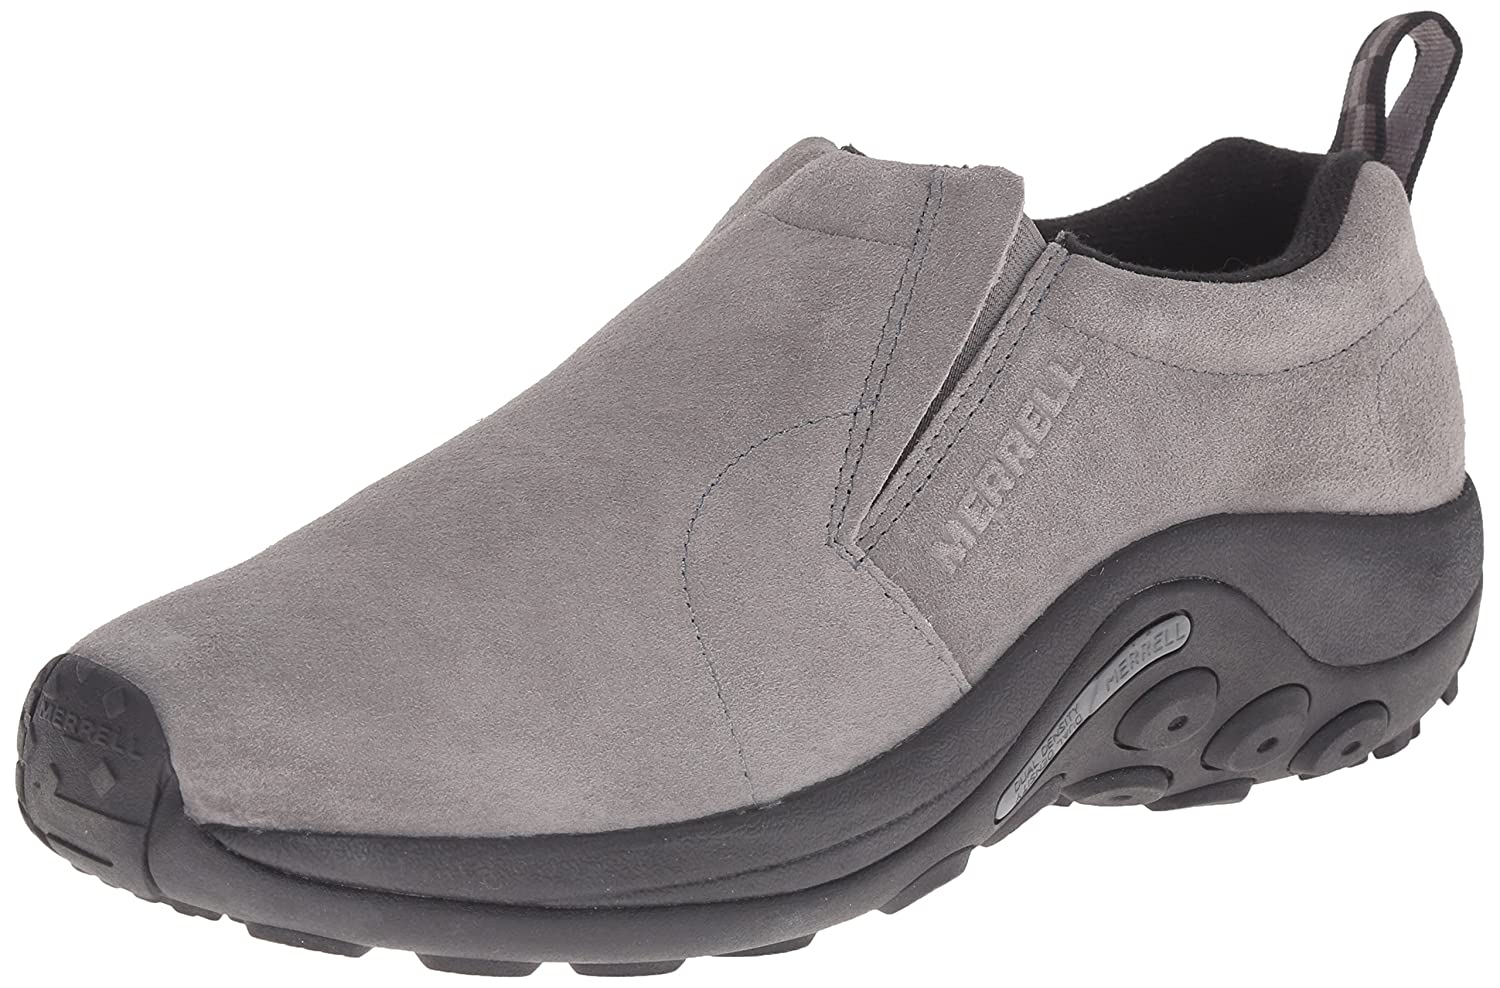 Merrell Jungle Moc, Mocasines Hombre 12 D(M) US|Castlerock